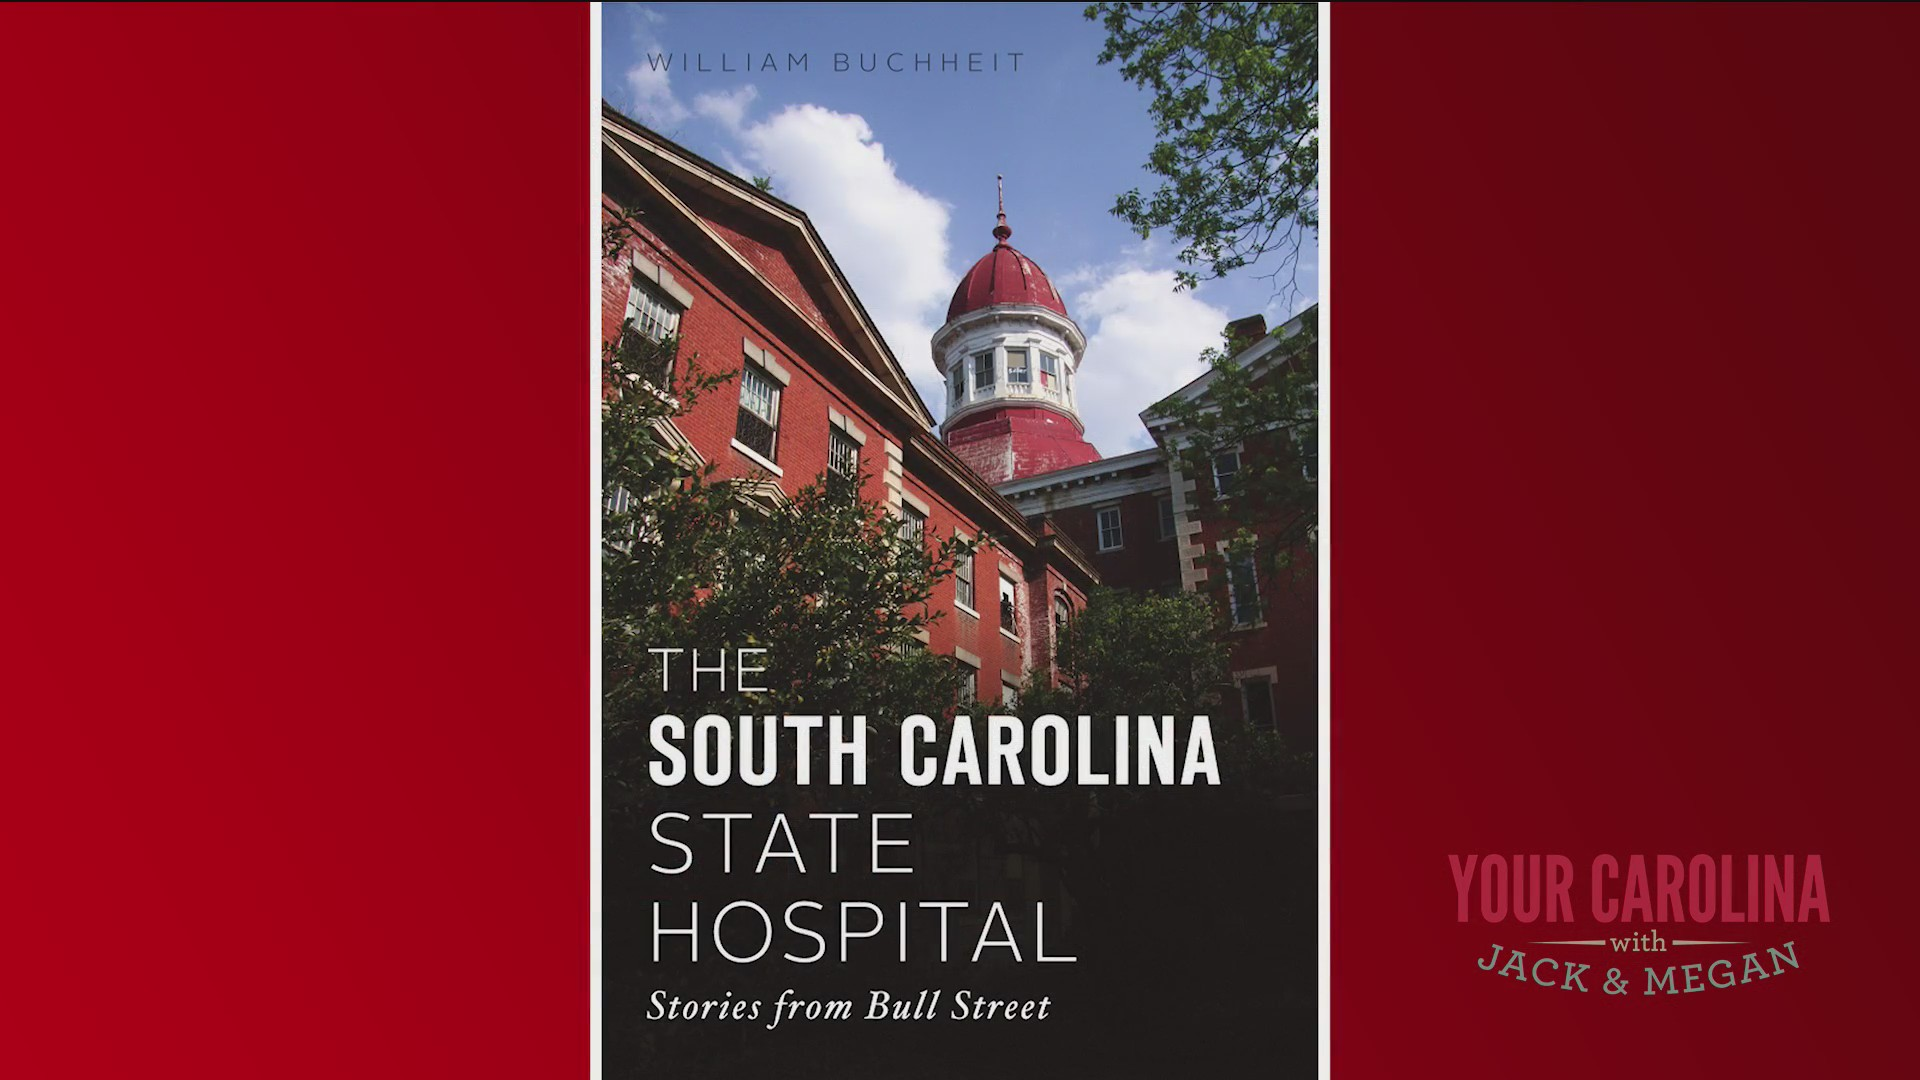 Local Author Has Written Book About Old State Hospital On Bull Street